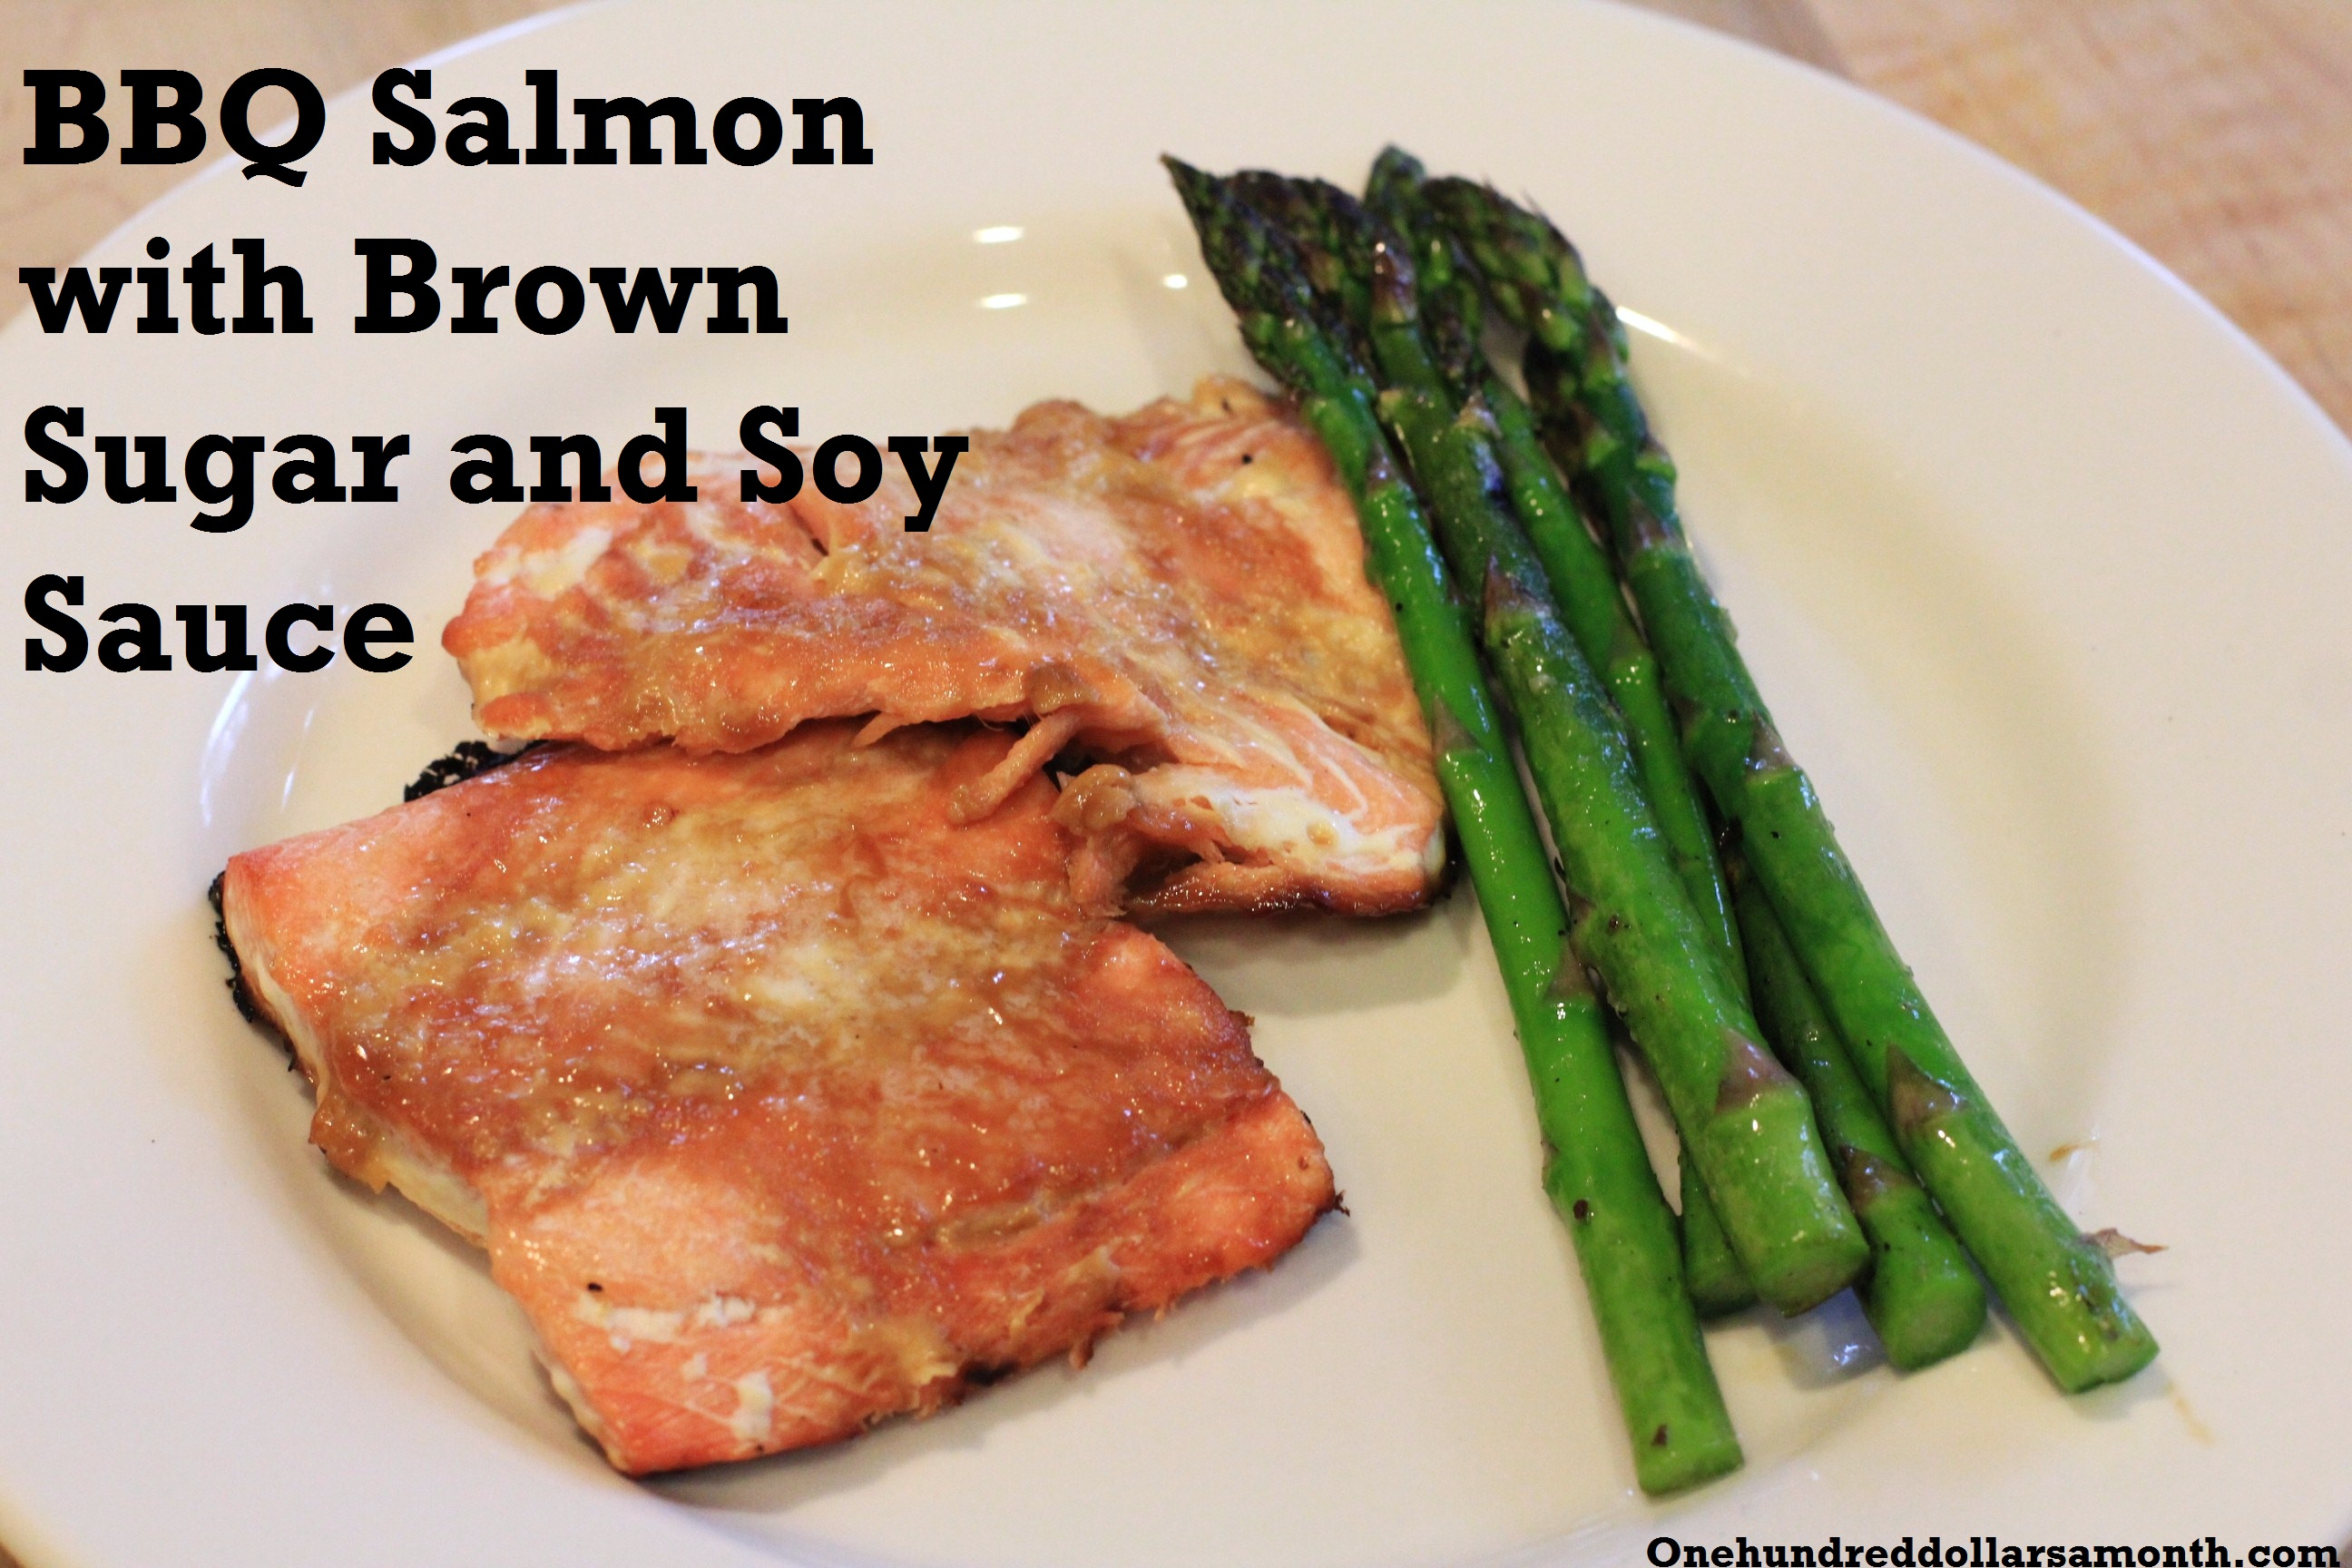 Recipe: BBQ Salmon with Brown Sugar and Soy Sauce